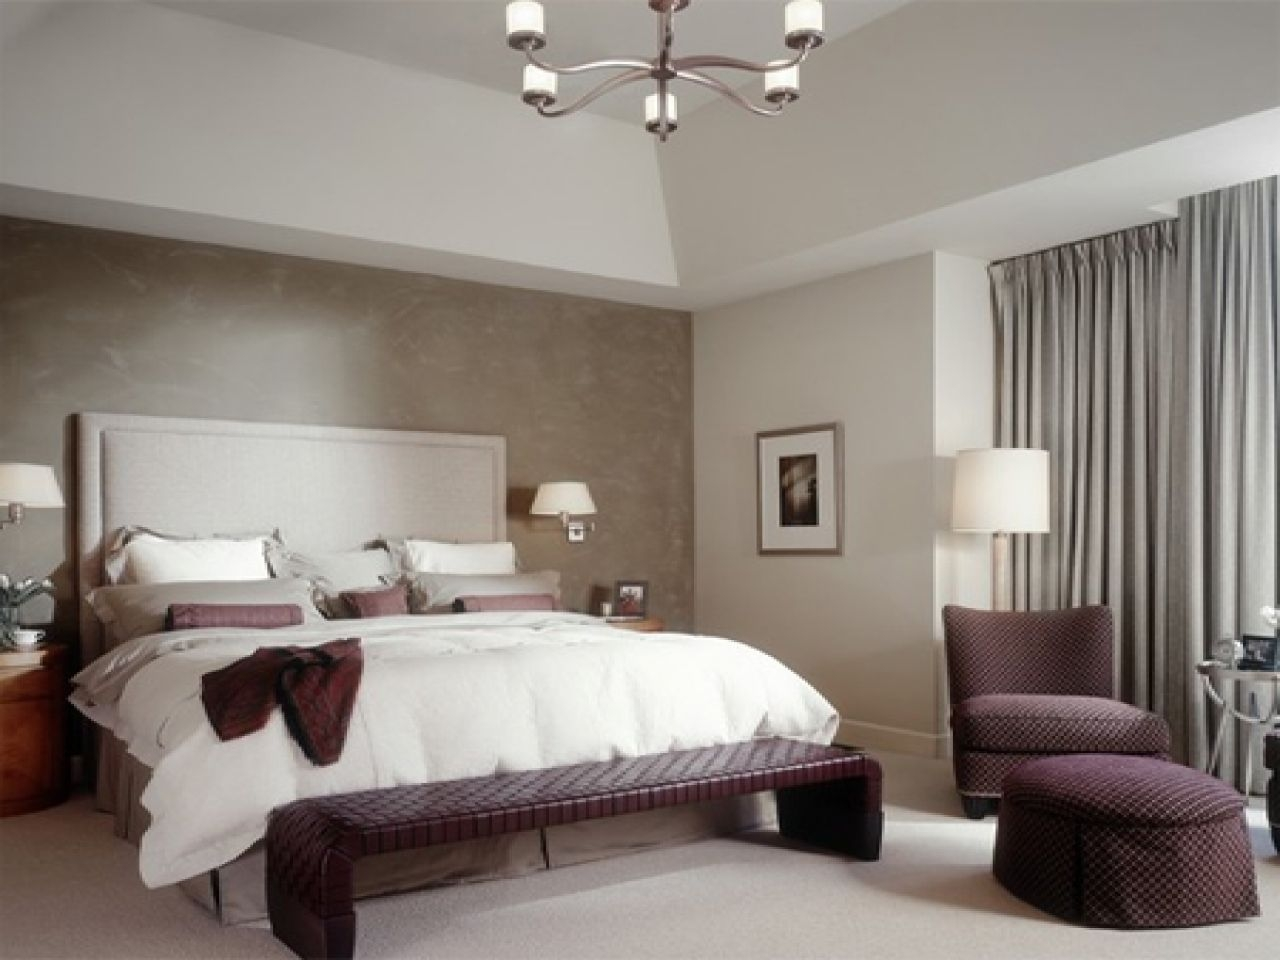 Hotel Chic Bedroom Boutique Style Bedroom Boutique Bedroom Ideas Bedroom Designs Flauminc